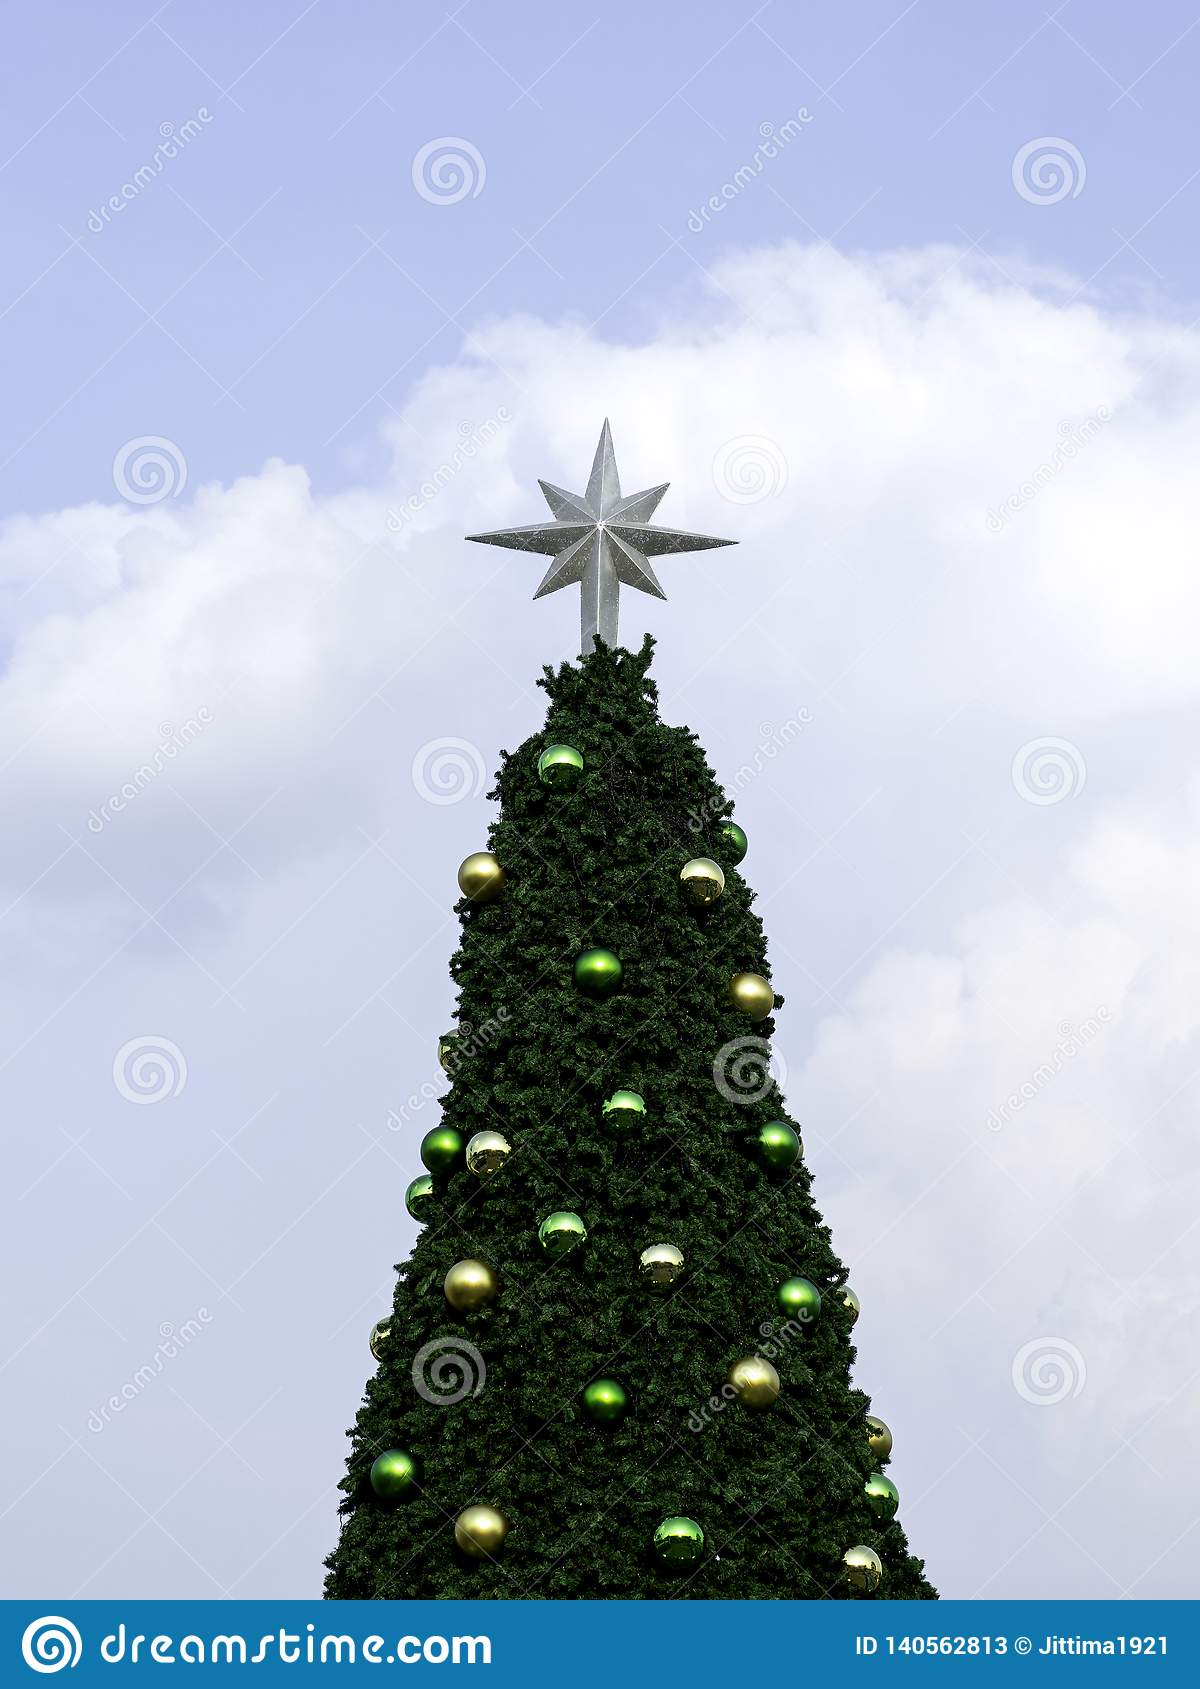 Christmas tree on blue sky